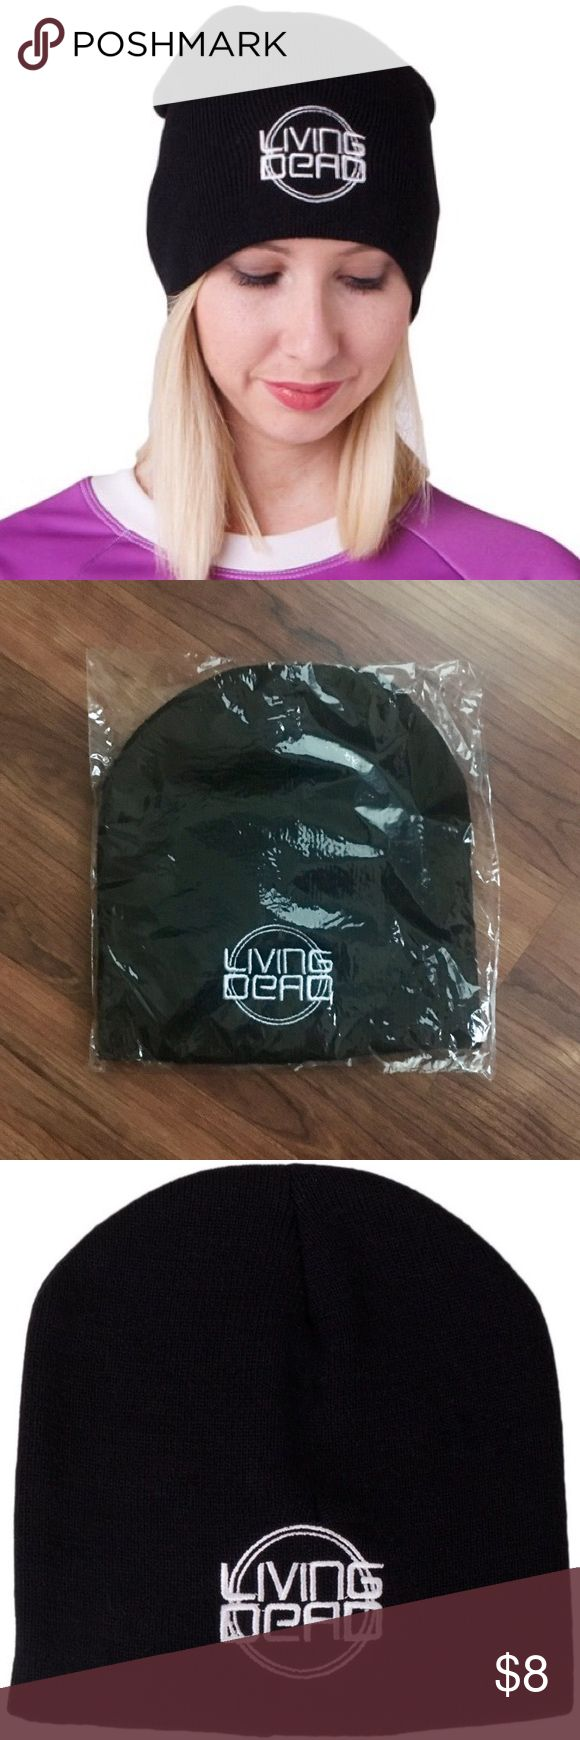 ✨ NEW Living Dead Clothing Black Logo Beanie Brand new!! Australian brand Living Dead Clothing - 100% acrylic black beanie hat - made in Australia Blackmilk Accessories Hats